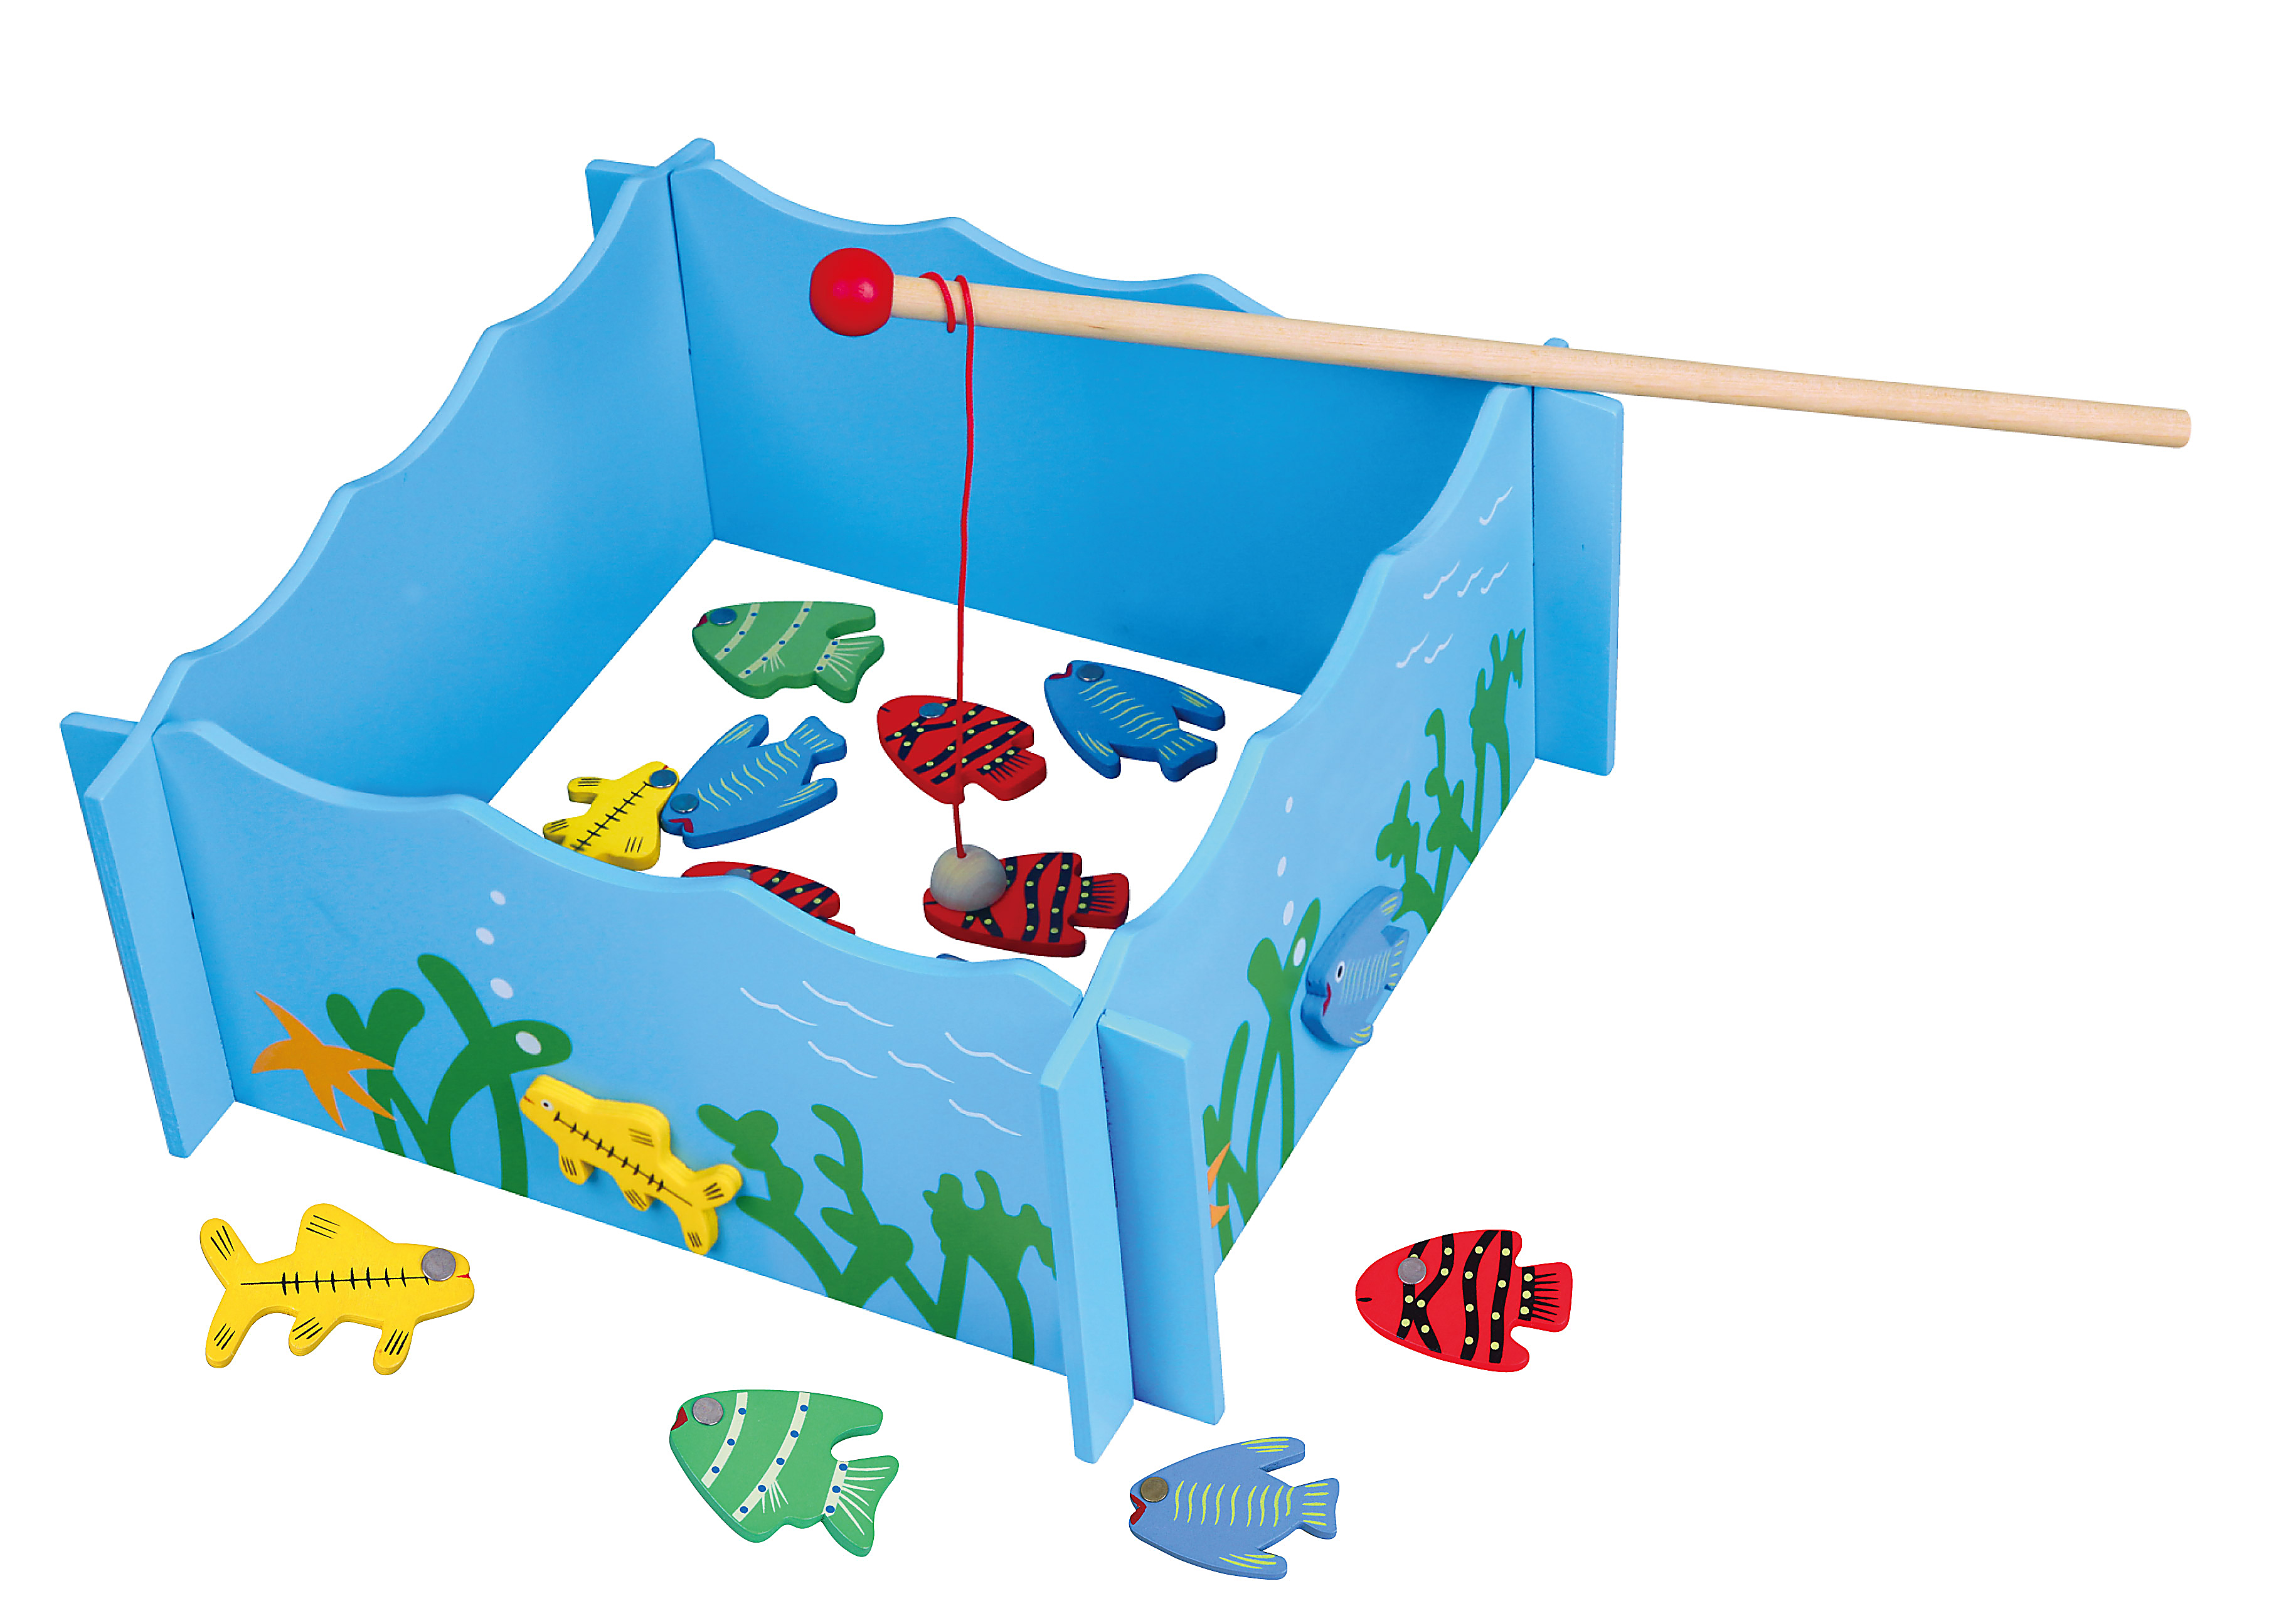 Fishing Game Playset - a fishing pool, 4 magnetic fishing rods and 20 pieces of fish